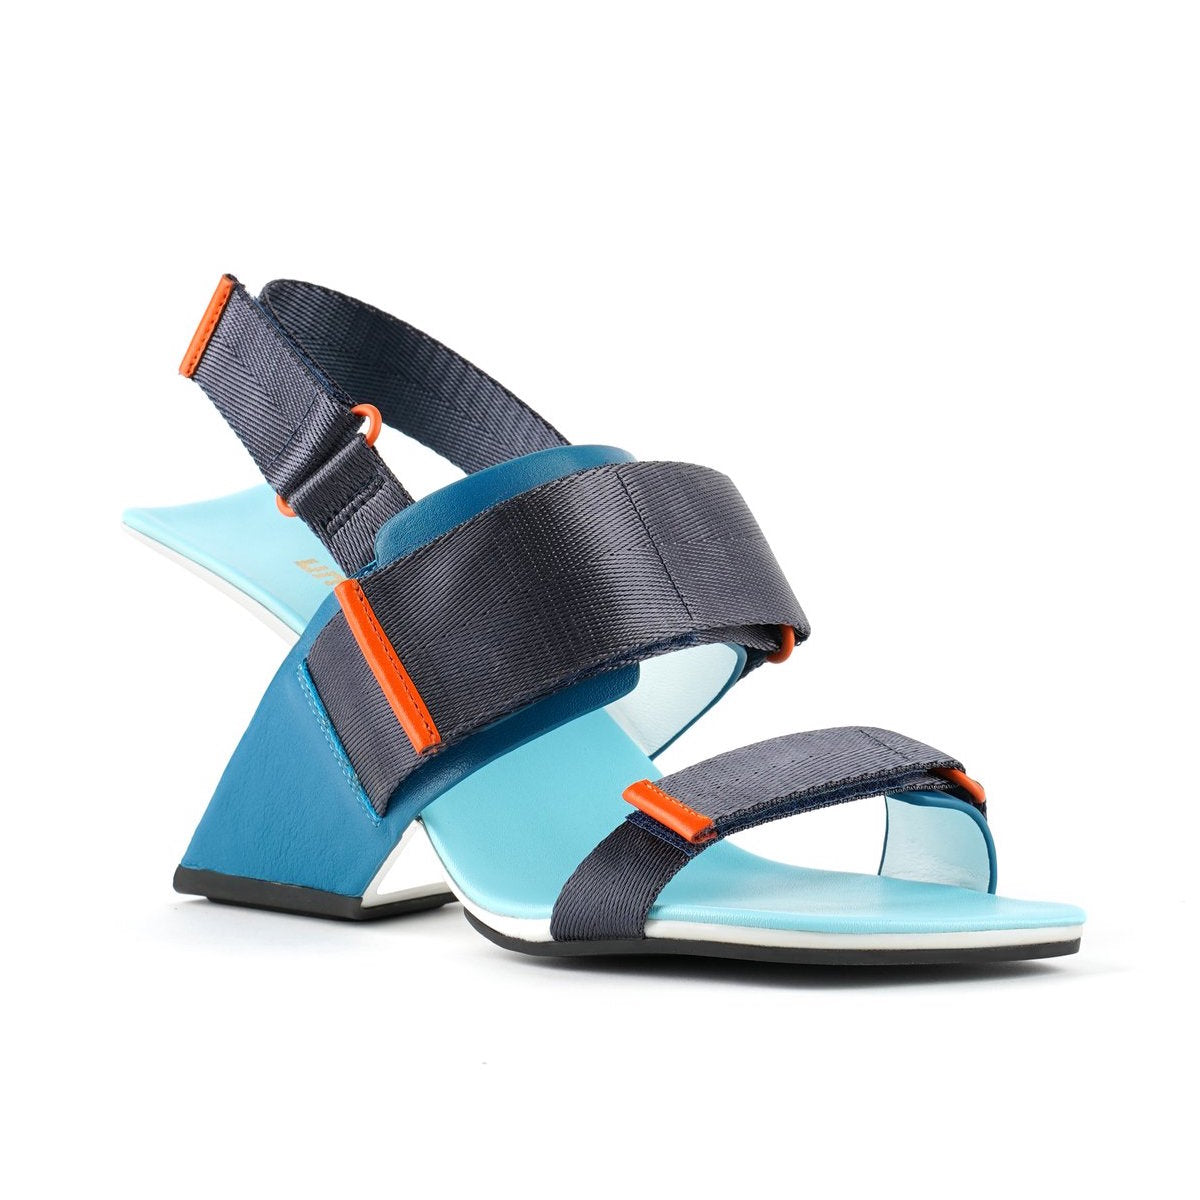 Outer front view of the united nude loop run high heel sandal. This sandal is blue with a black back strap, a black strap over the instep, and a black strap over the toes.